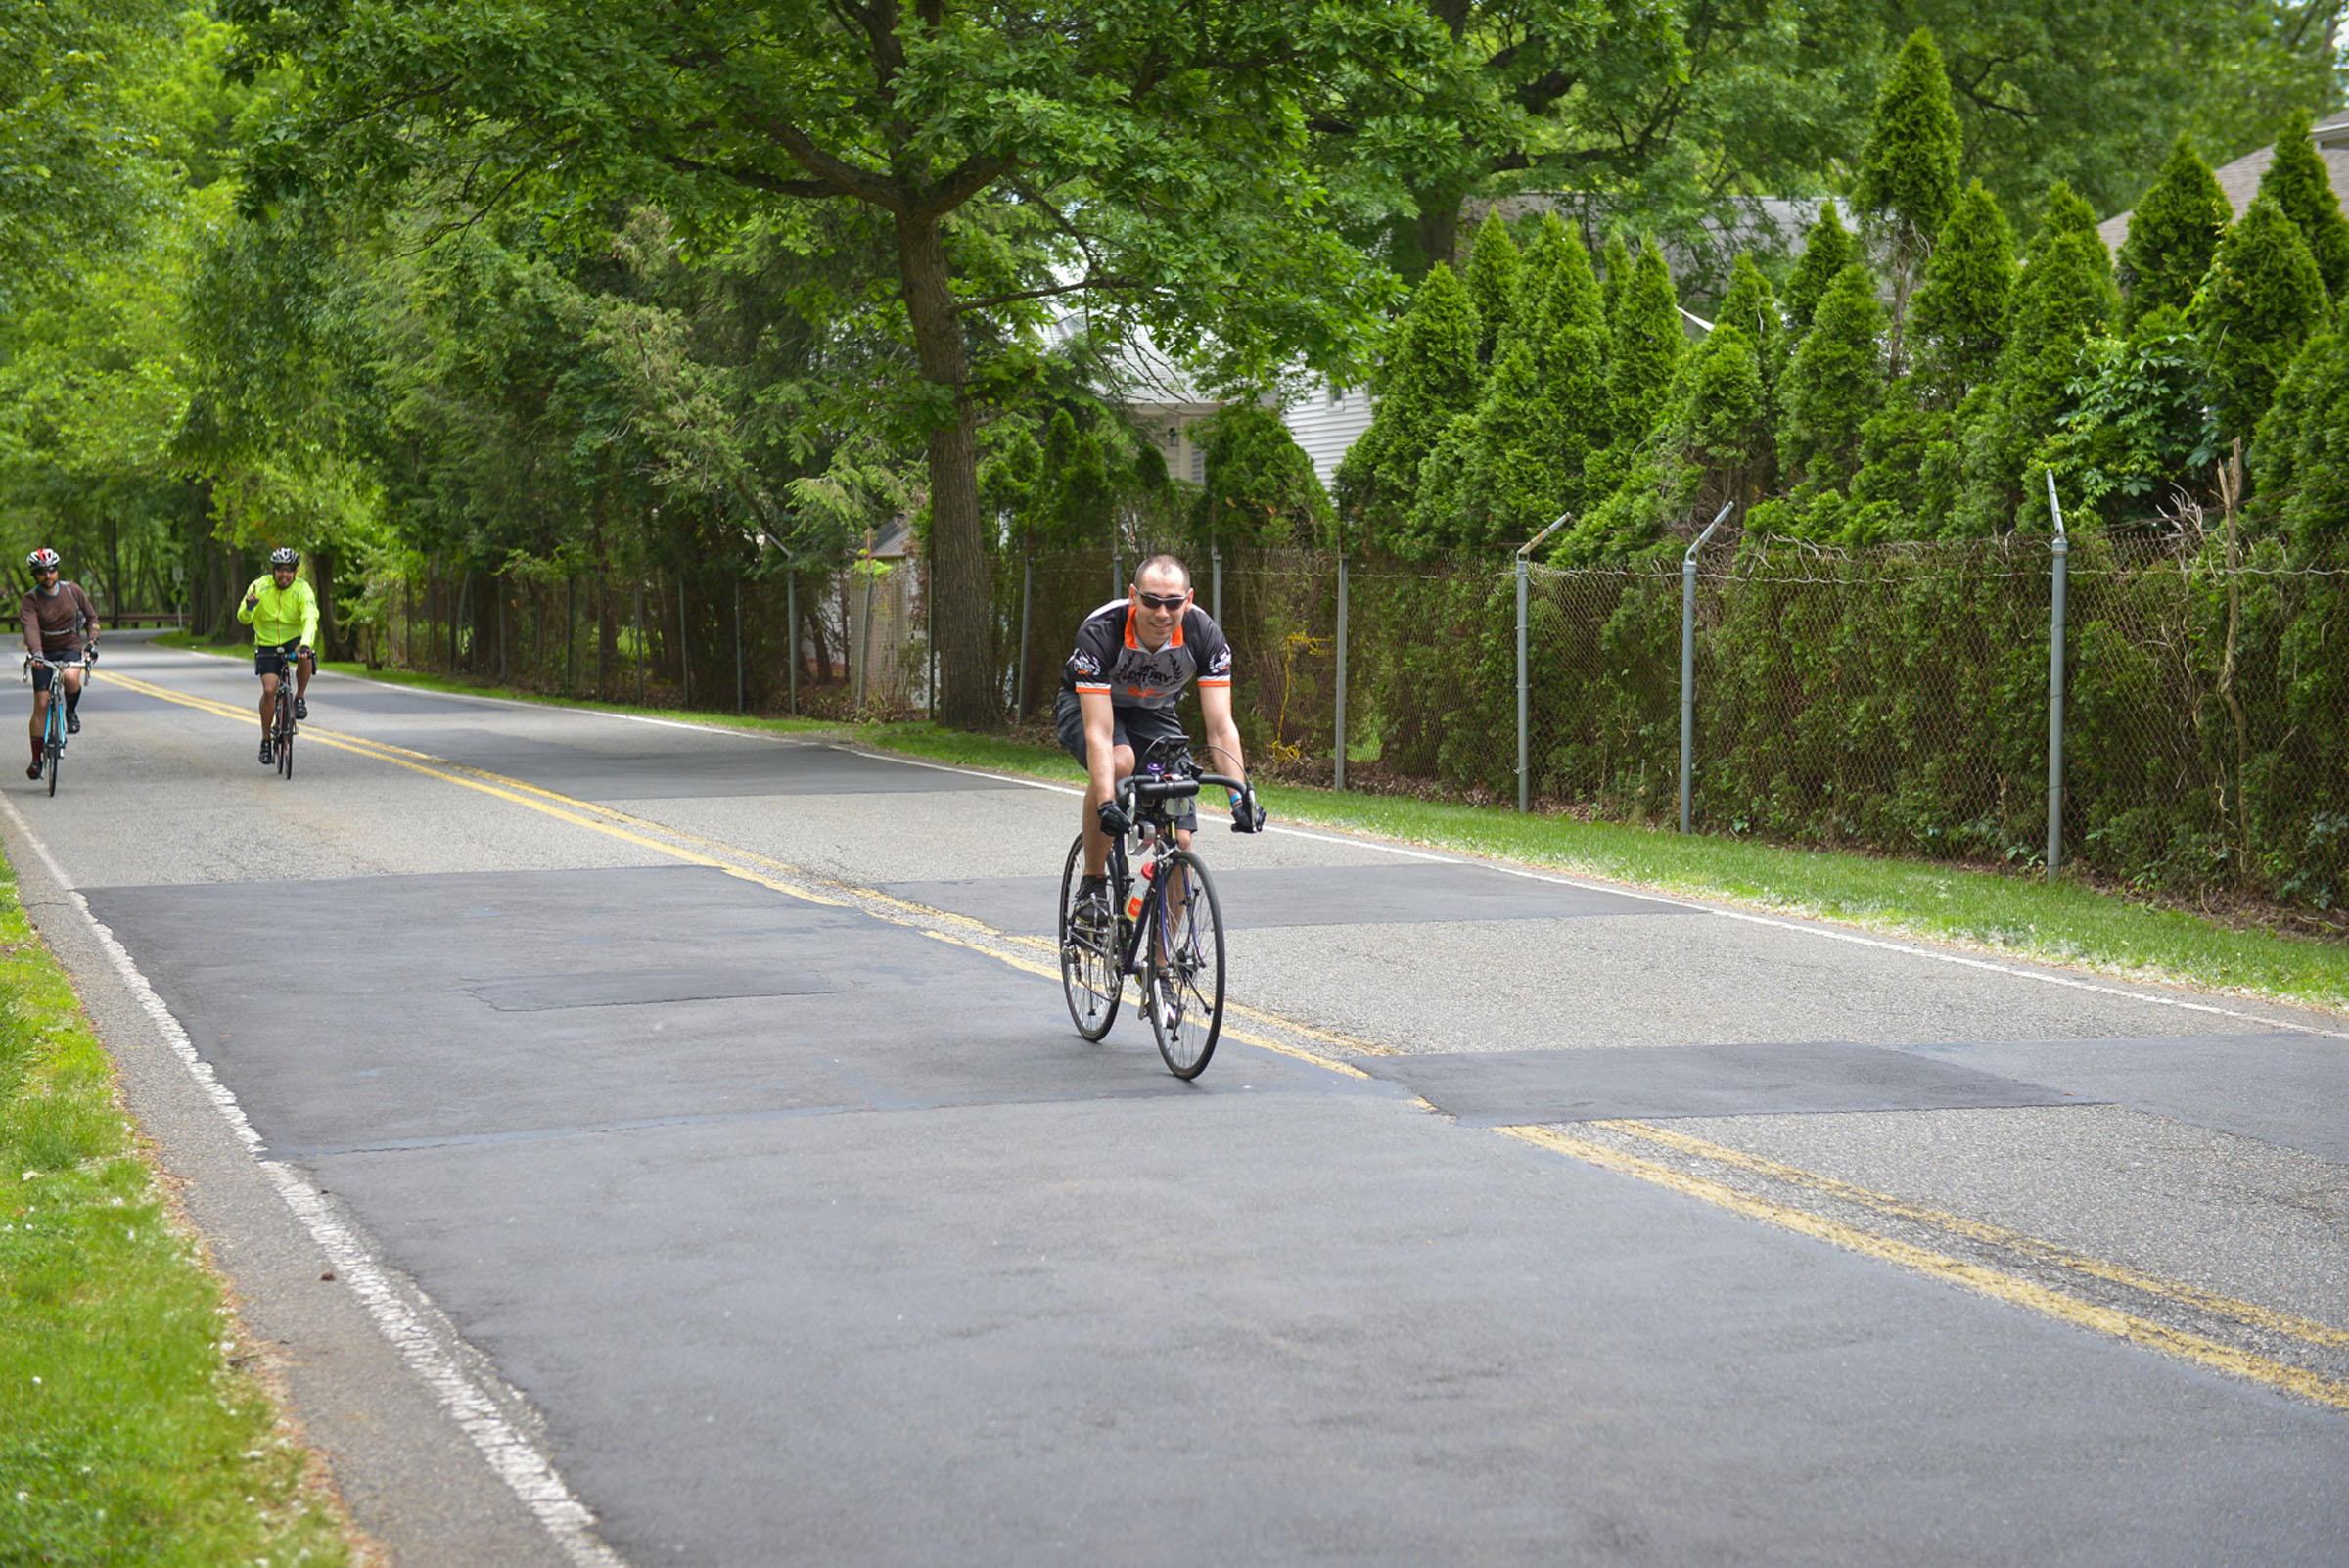 2017-06-04 GTD4A Charity Bike Ride - BCC - Paramus NJ-2347.jpg